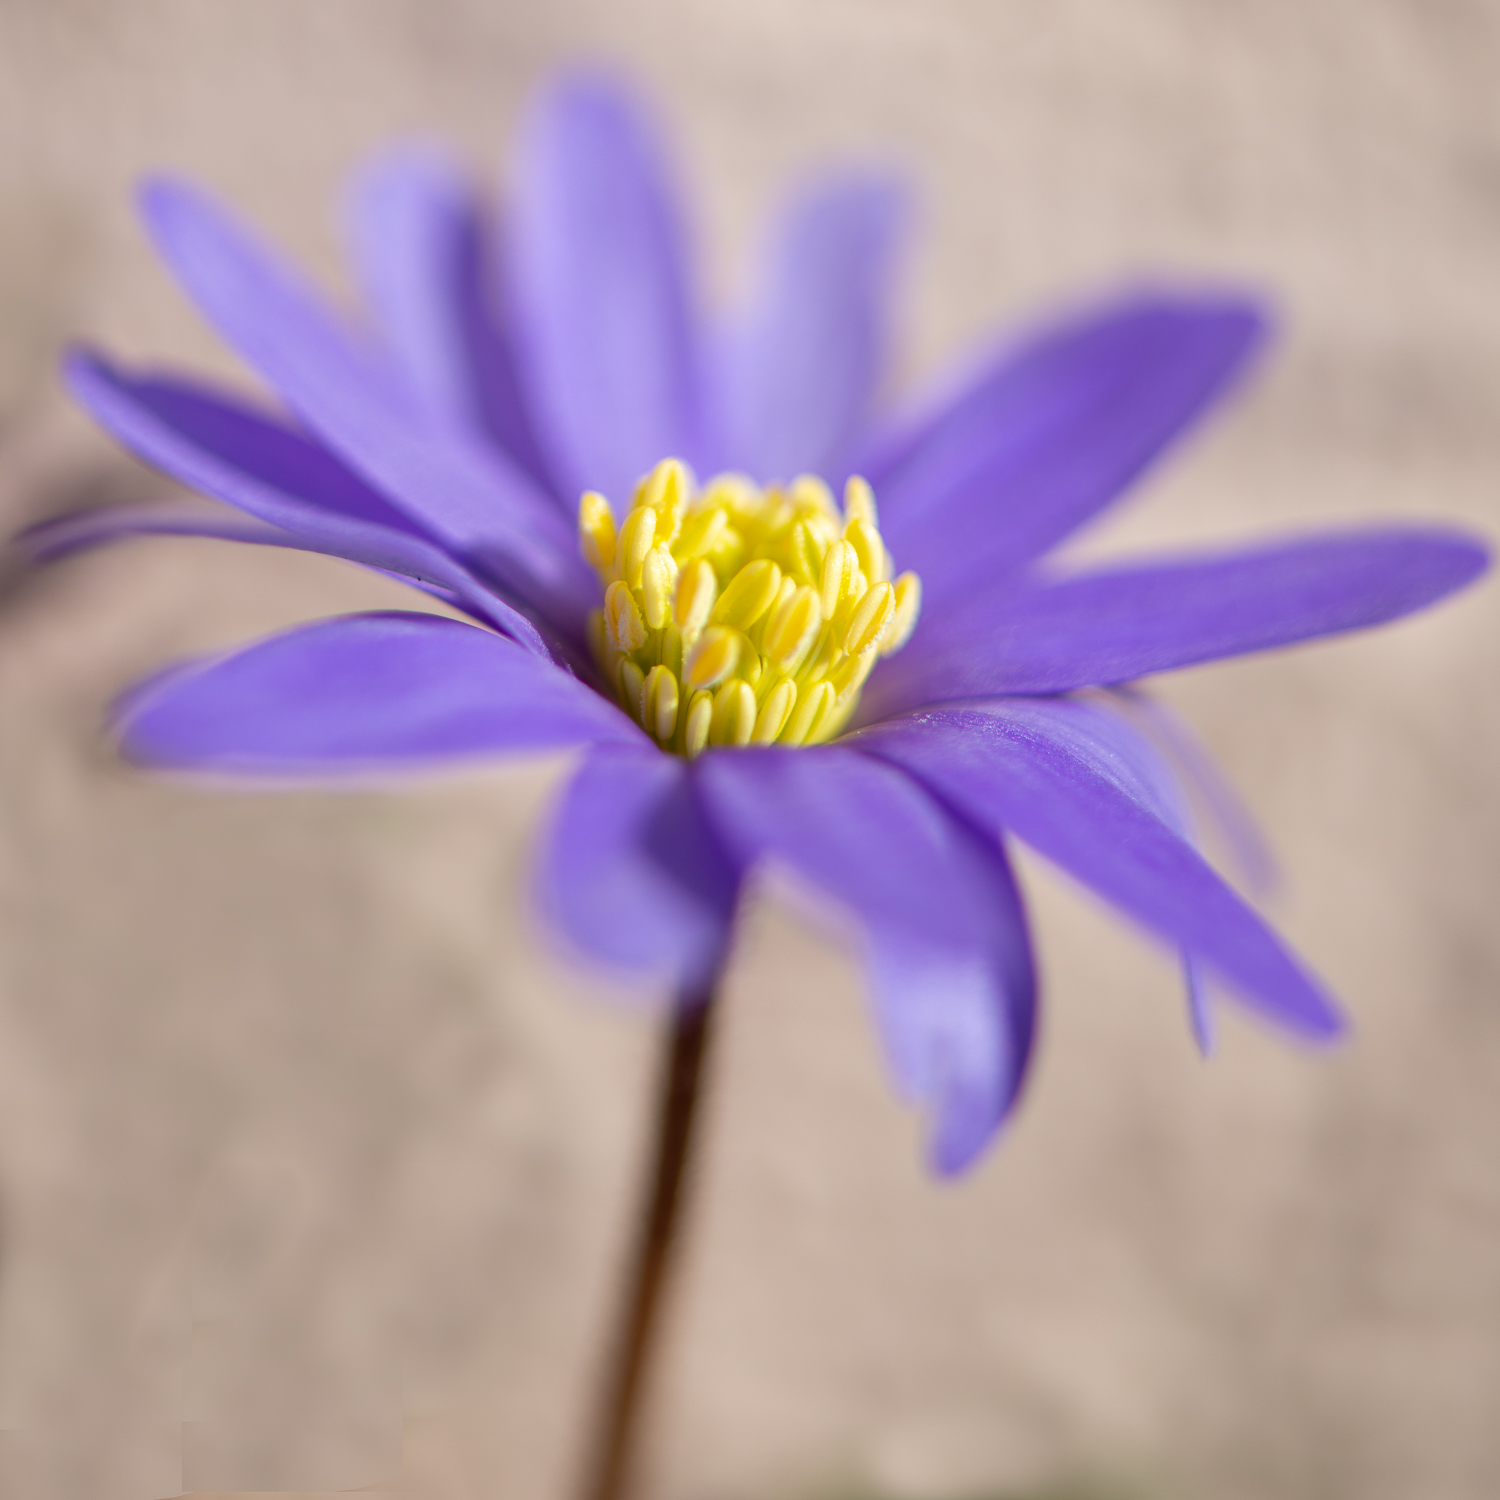 For your clothes, here's a pretty flower